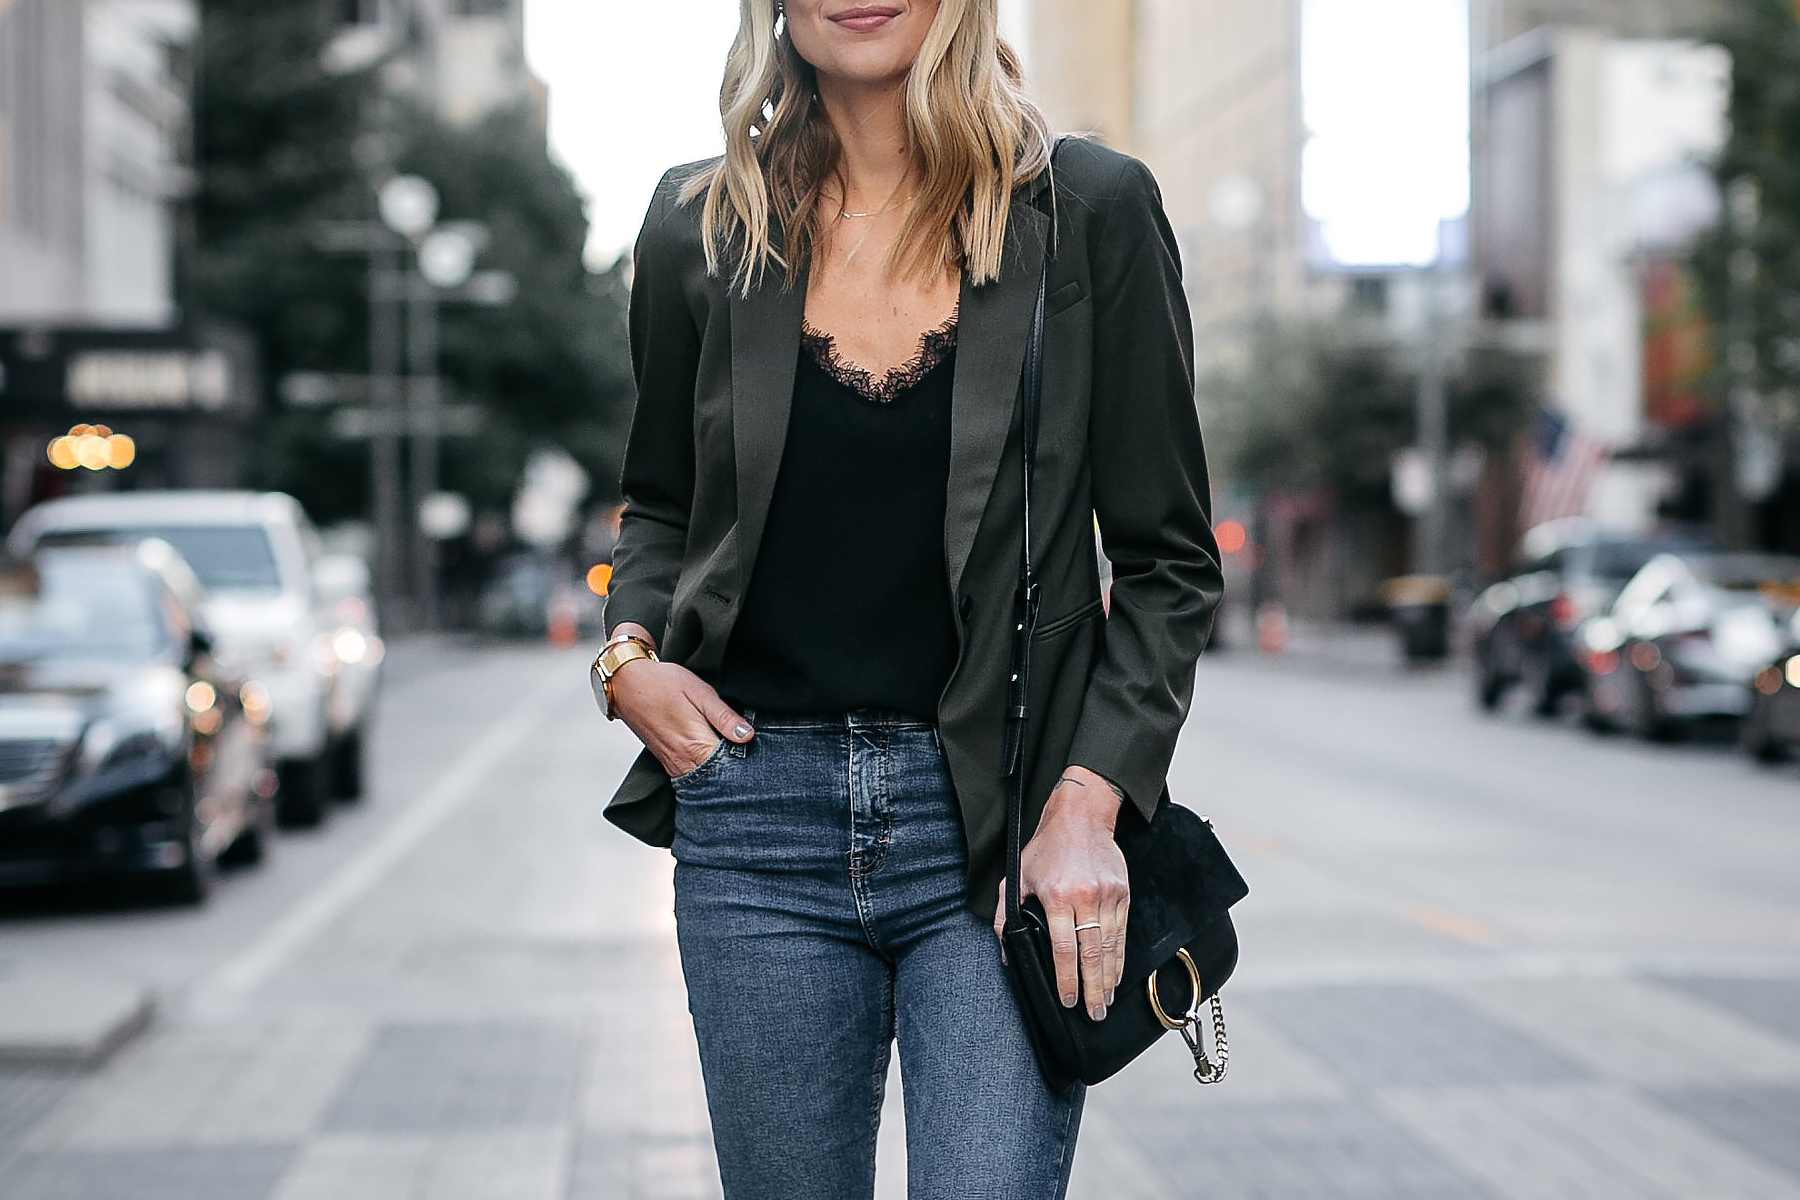 Everlane Olive Green Blazer Anine Bing Black Lace Cami Denim Jeans Chloe Faye Black Handbag Fashion Jackson Dallas Blogger Fashion Blogger Street Style